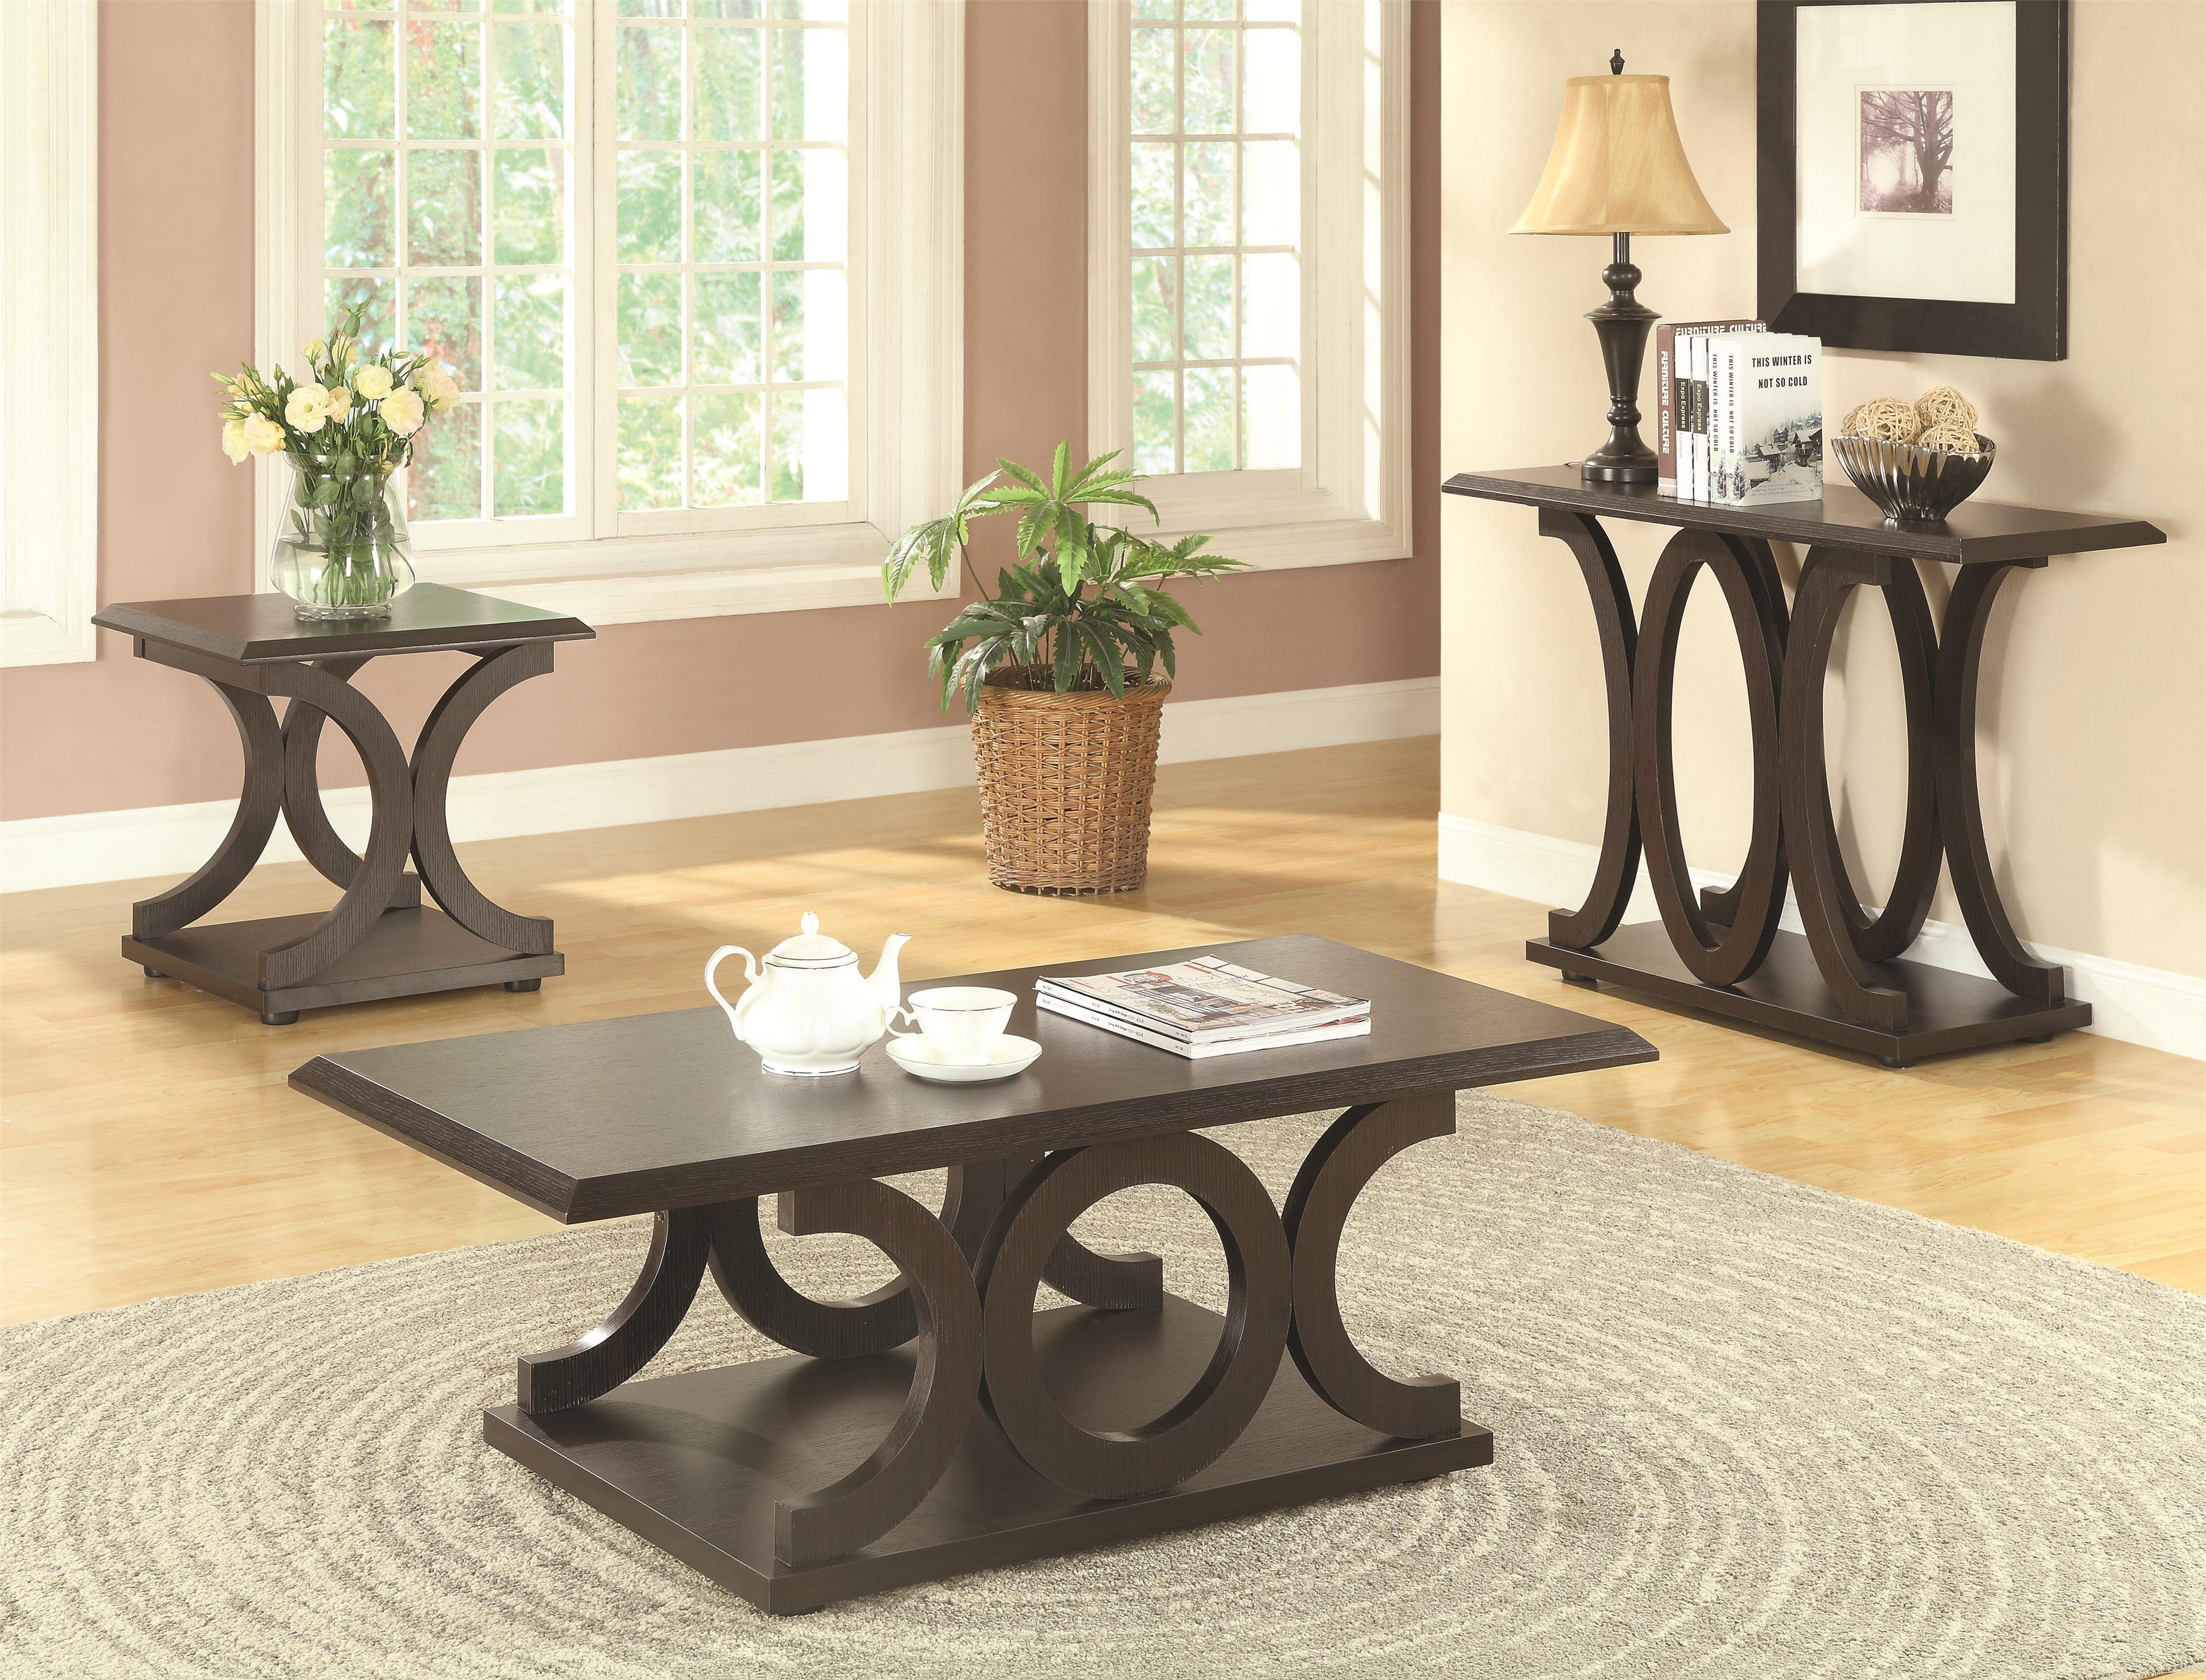 Coaster 703140 C Shaped Coffee Table